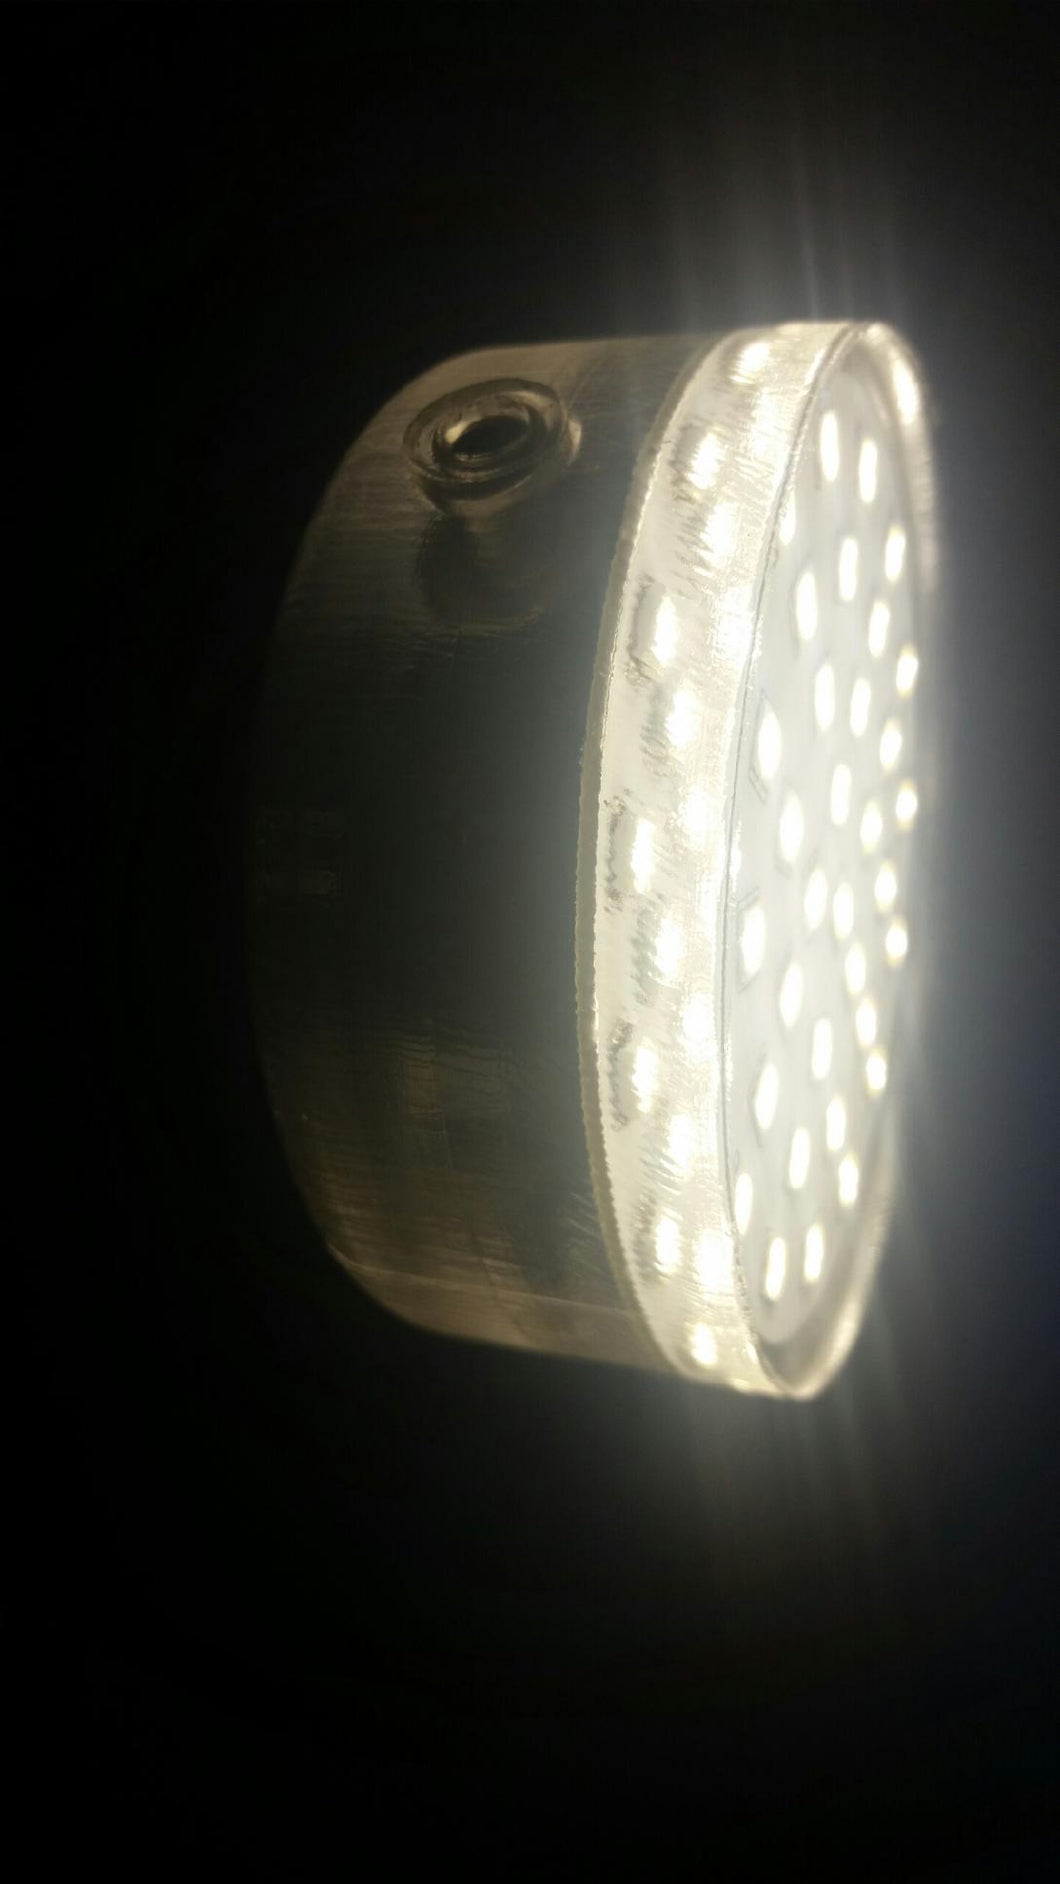 500 lumen hard-potted LED light